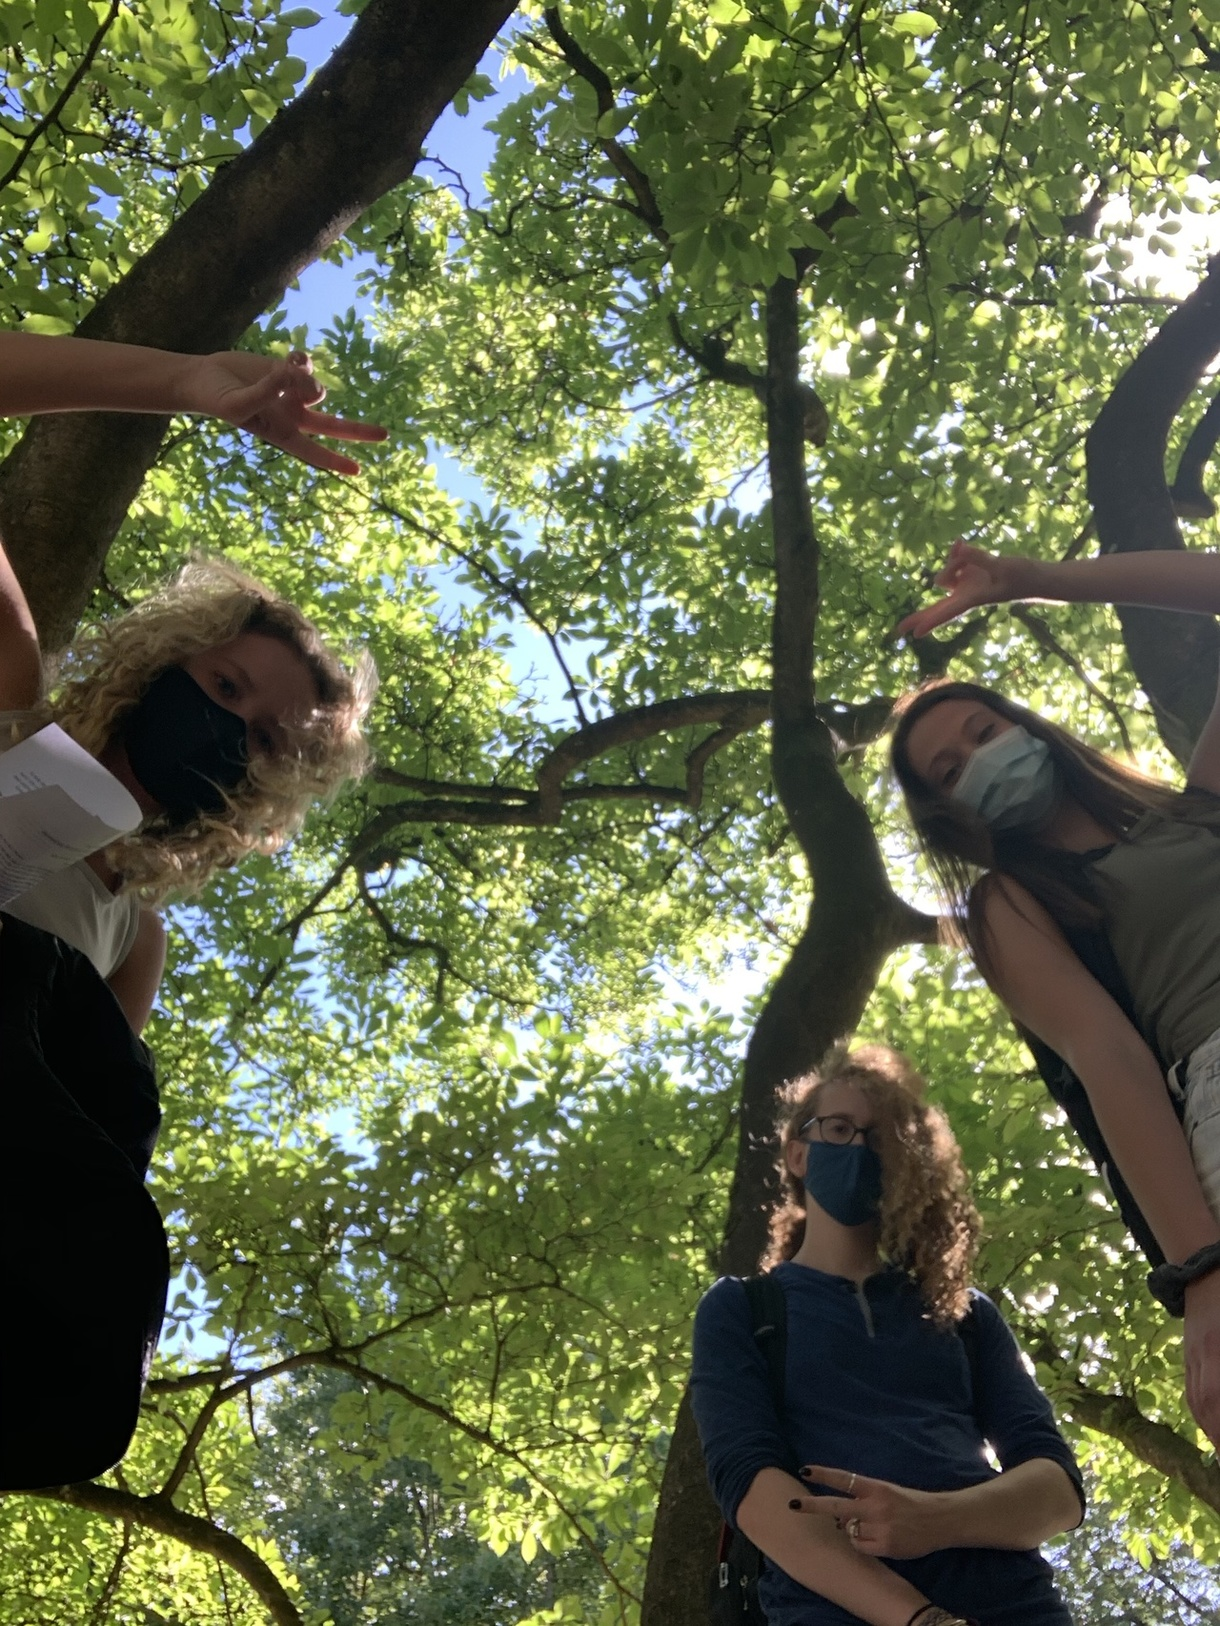 Three students in a park